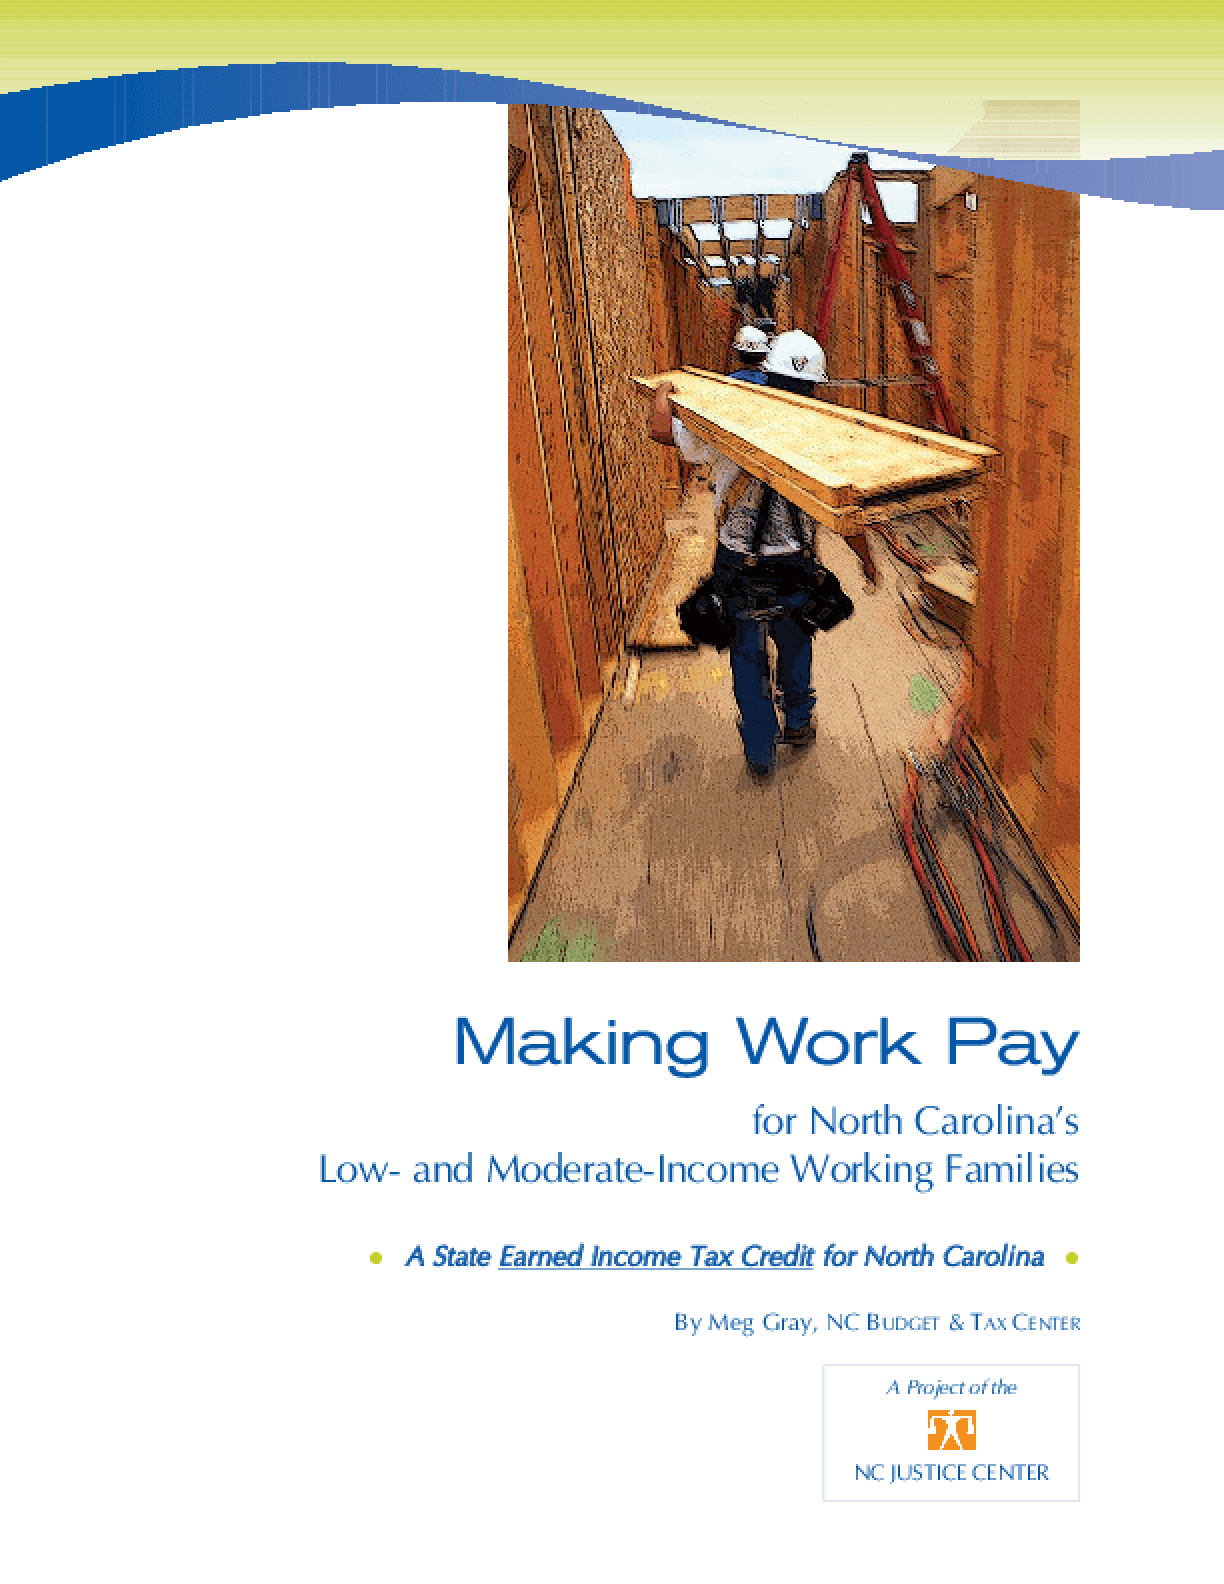 Making Work Pay for North Carolina's Low- and Moderate-Income Working Families